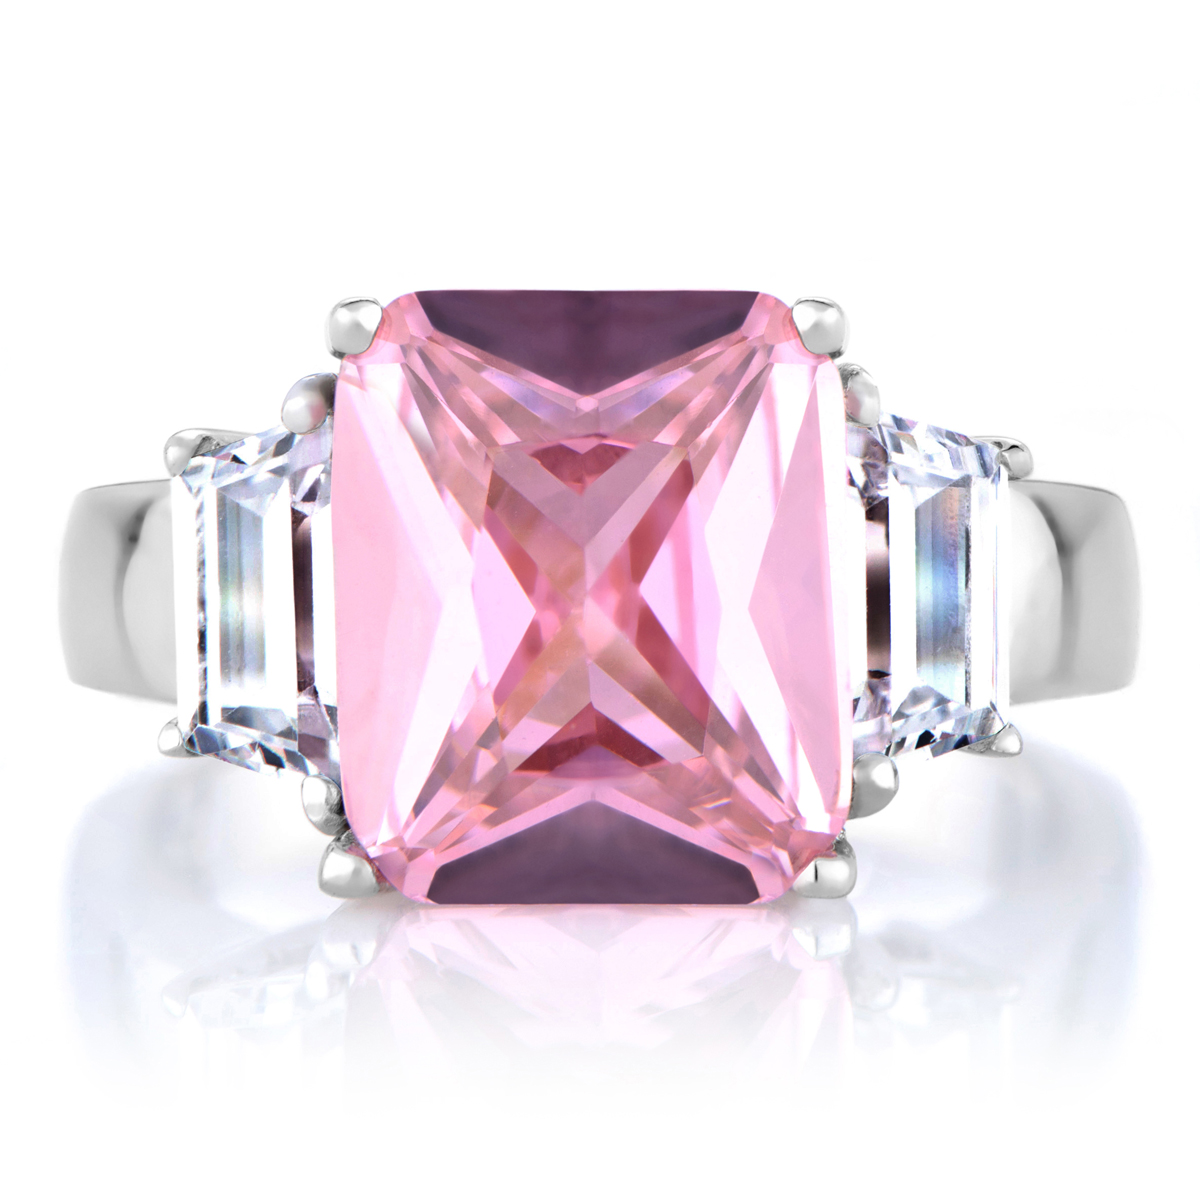 perfectly pink emerald cut cz engagement ring roll off image to close zoom window - Pink Diamond Wedding Rings